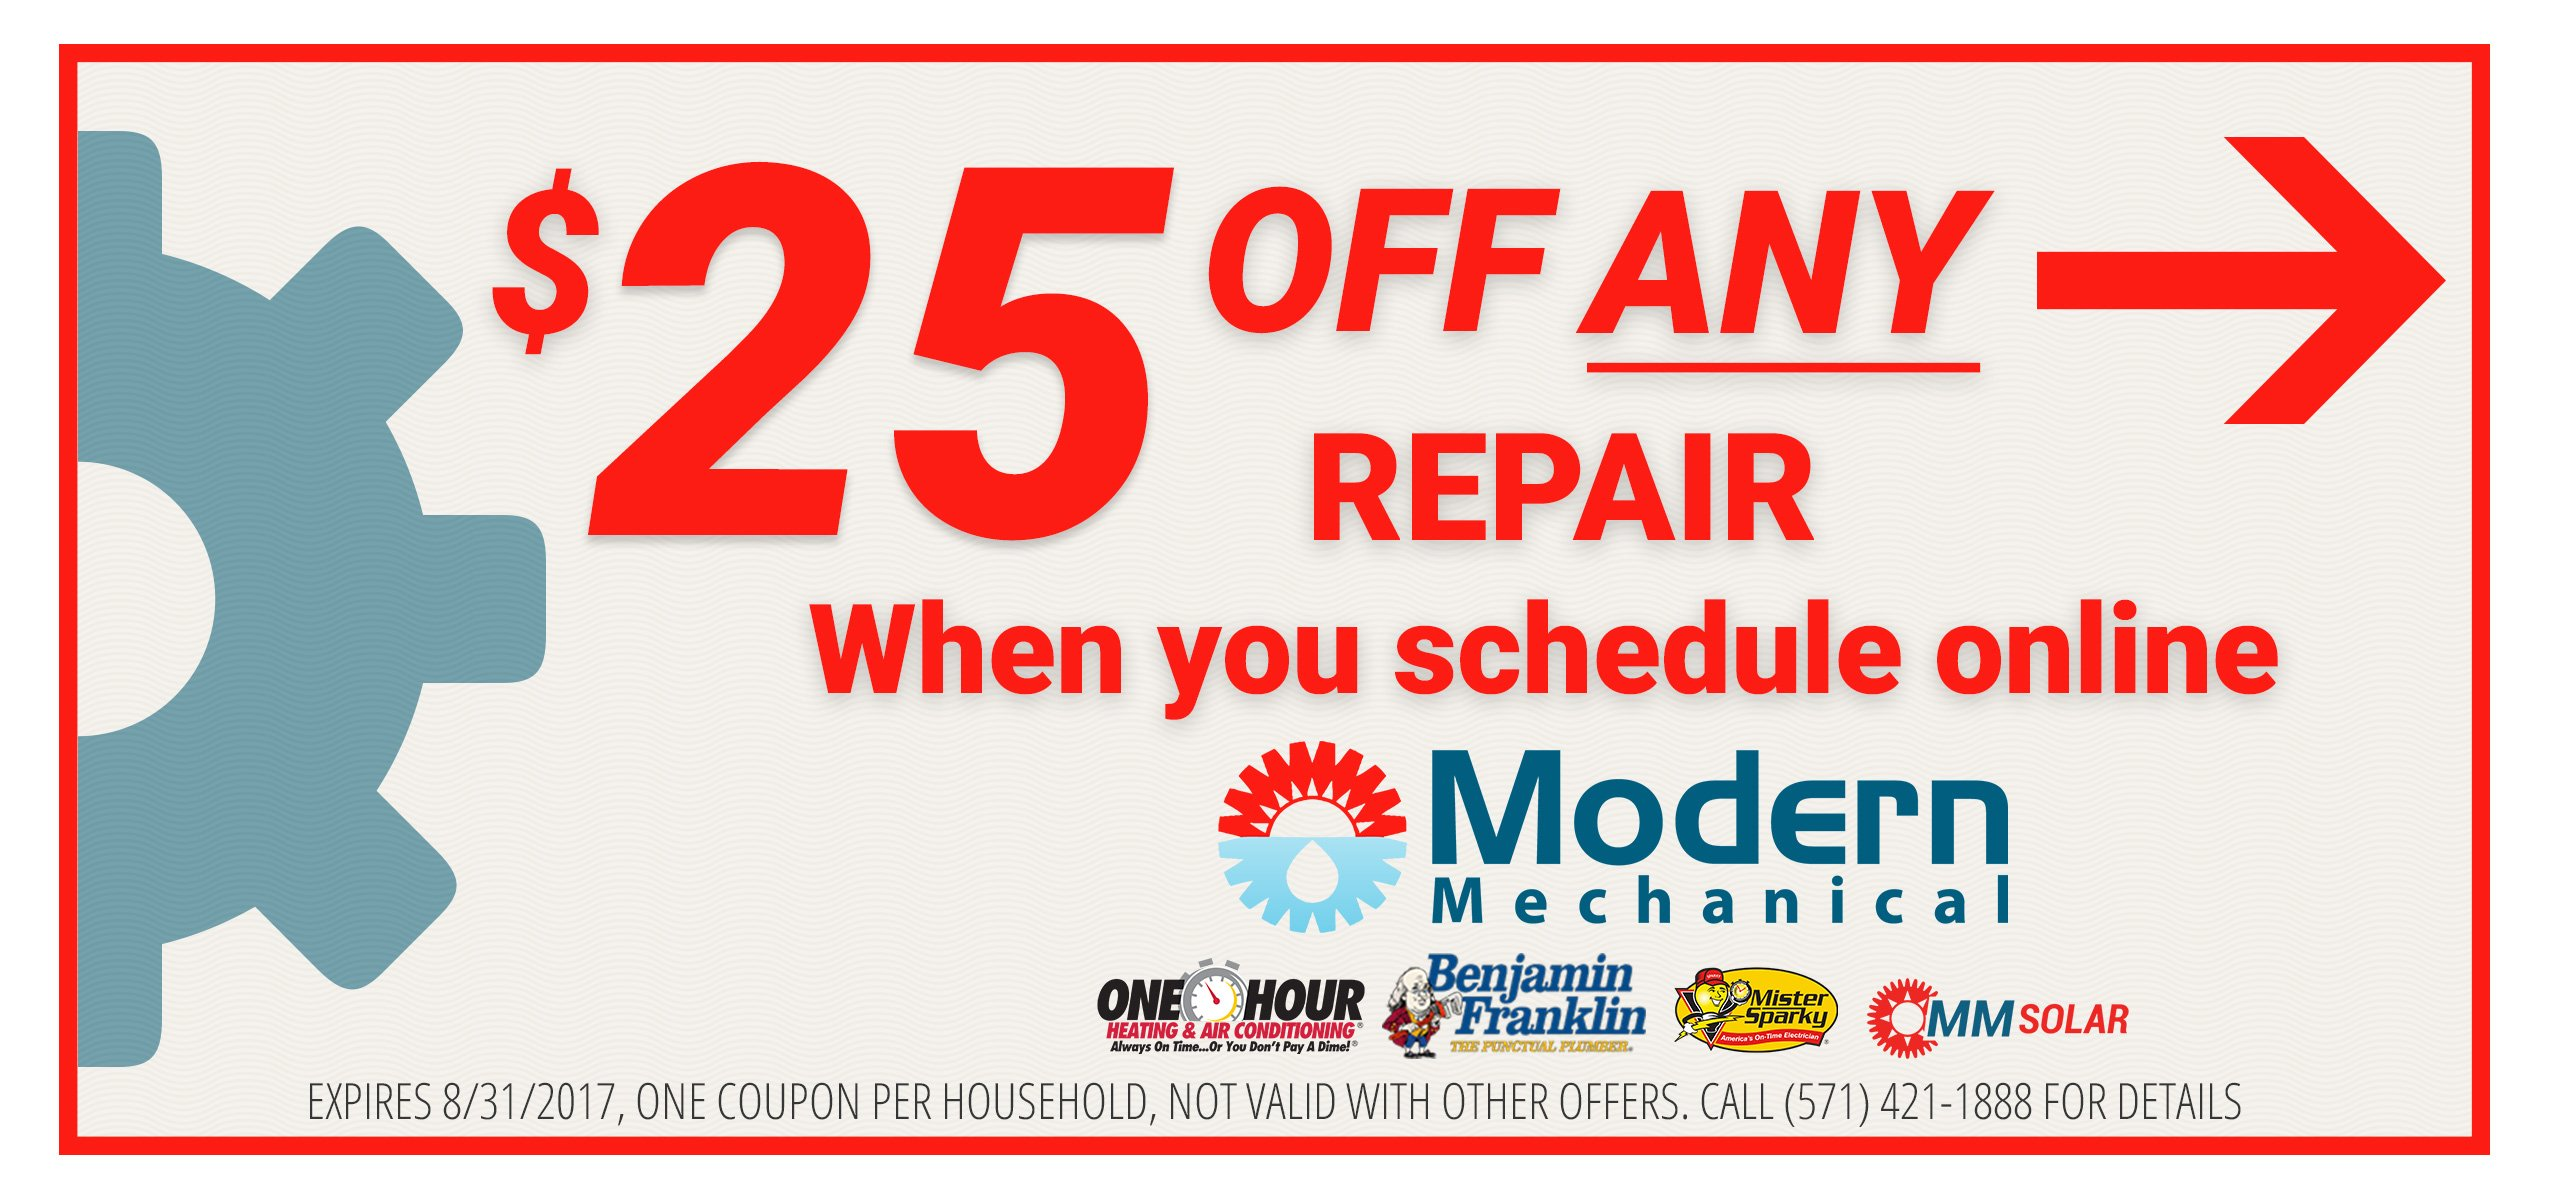 $25 off any repair when scheduled online